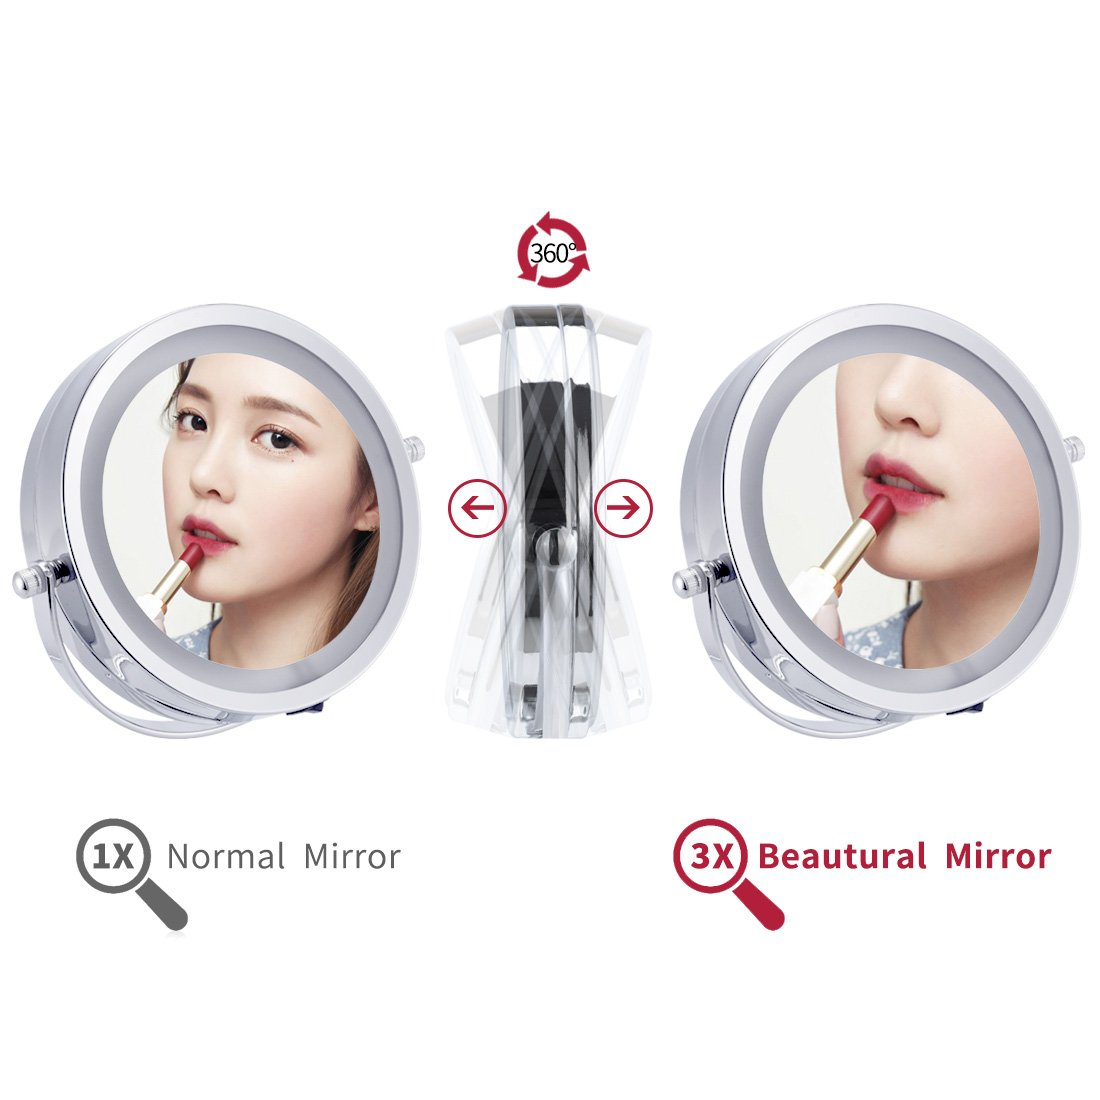 1X/3X Magnification Led Cosmetic Mirror Wall Mounted, Double Side, Adjustable, Rotating Function, Lighted Vanity Mirror, Powered by 4 x AAA Batteries (not Included) by FIRMLOC (Image #5)